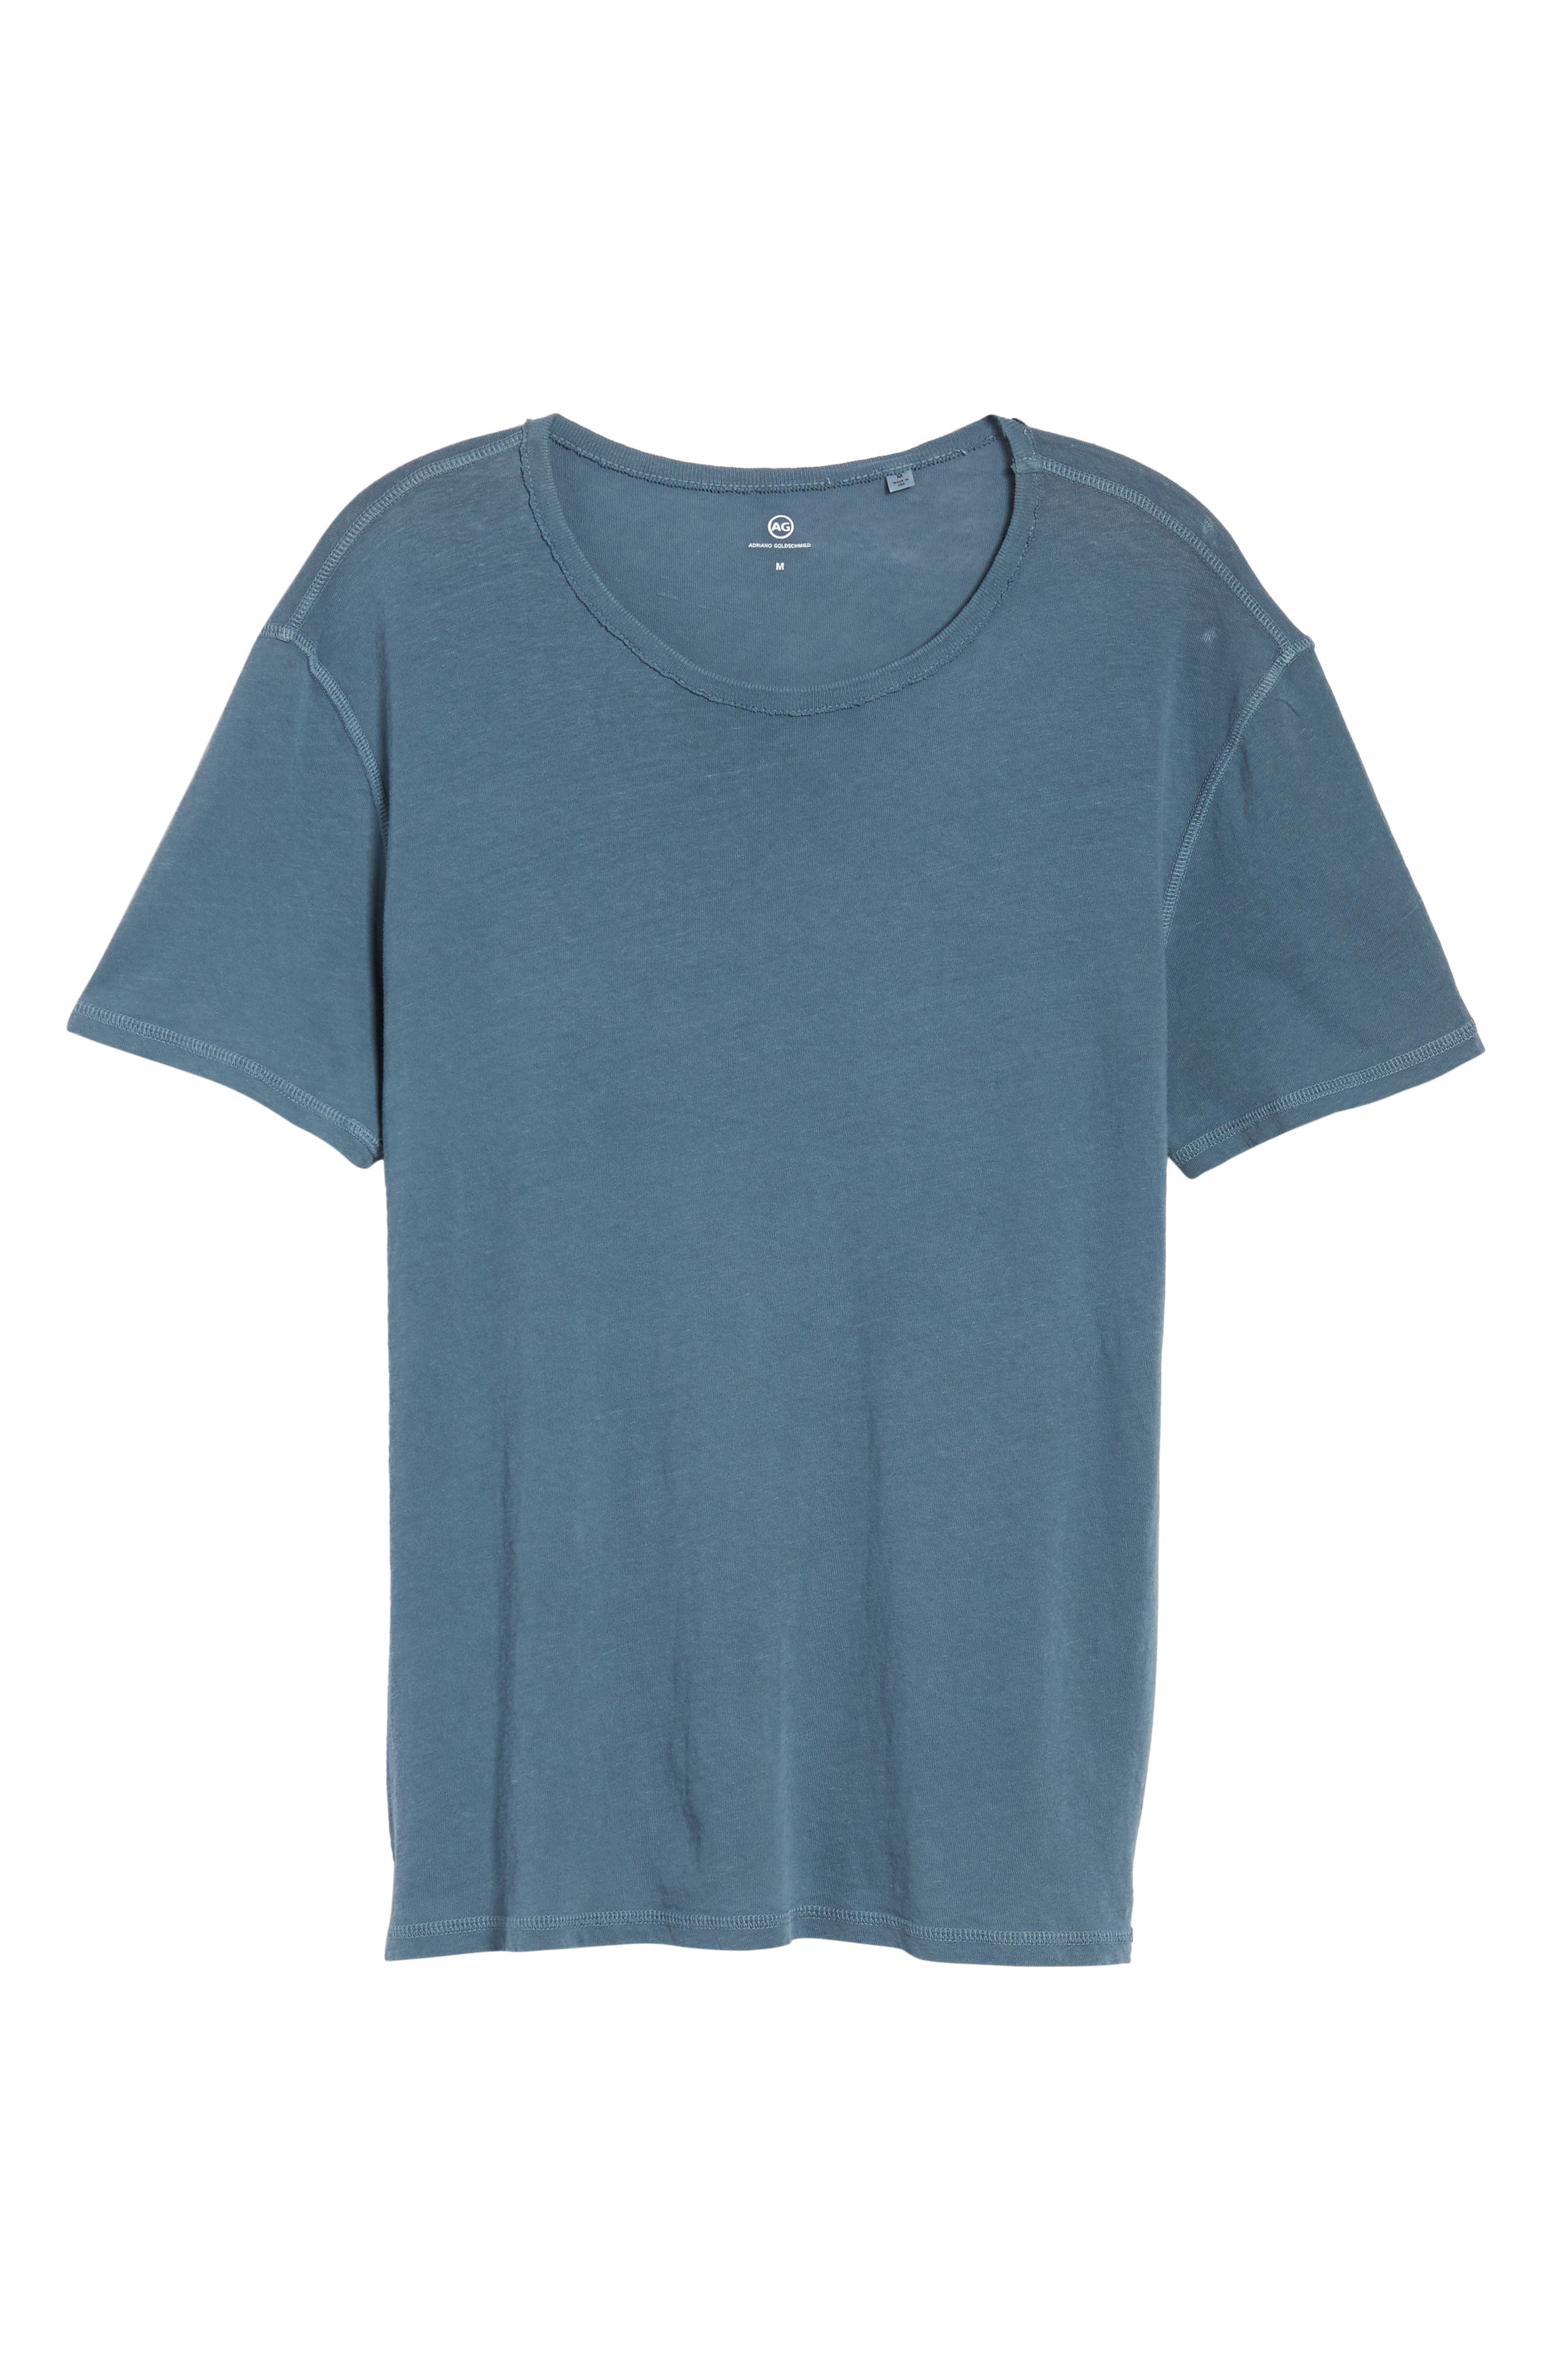 Ramsey Slim Fit Crewneck T-Shirt,                         Main,                         color, Weathered Pacific Coast